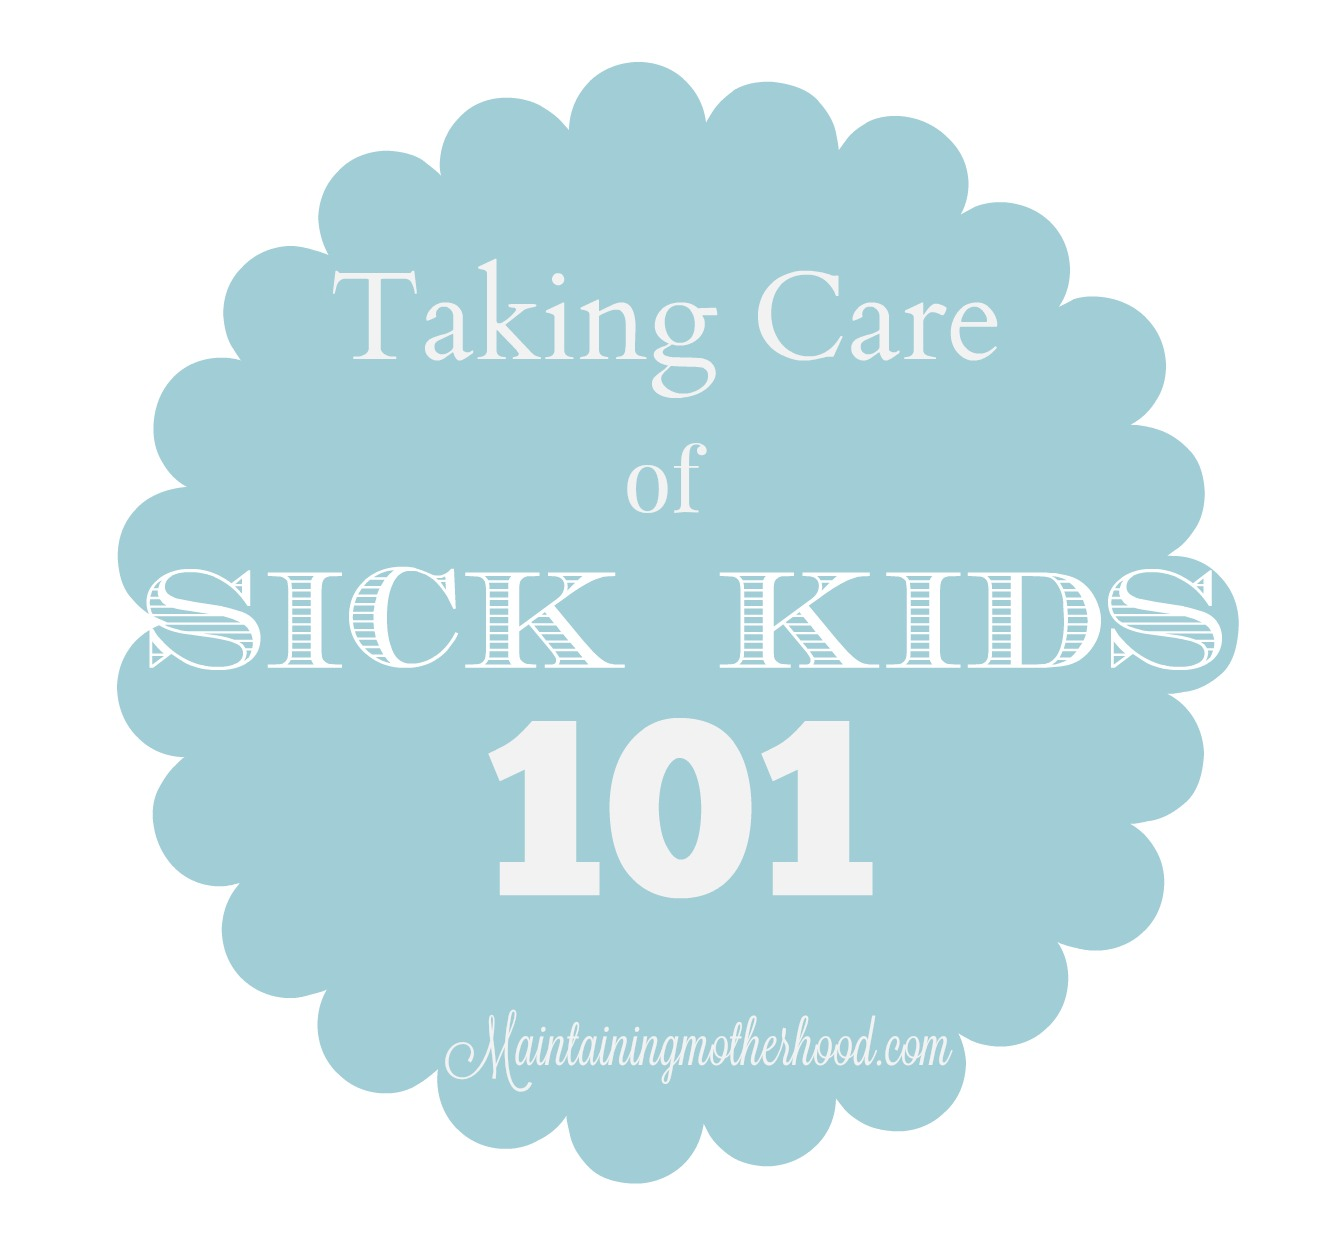 To save you copays and time in the Dr's office collecting more germs, here are my top sick kid tips for this winter season.